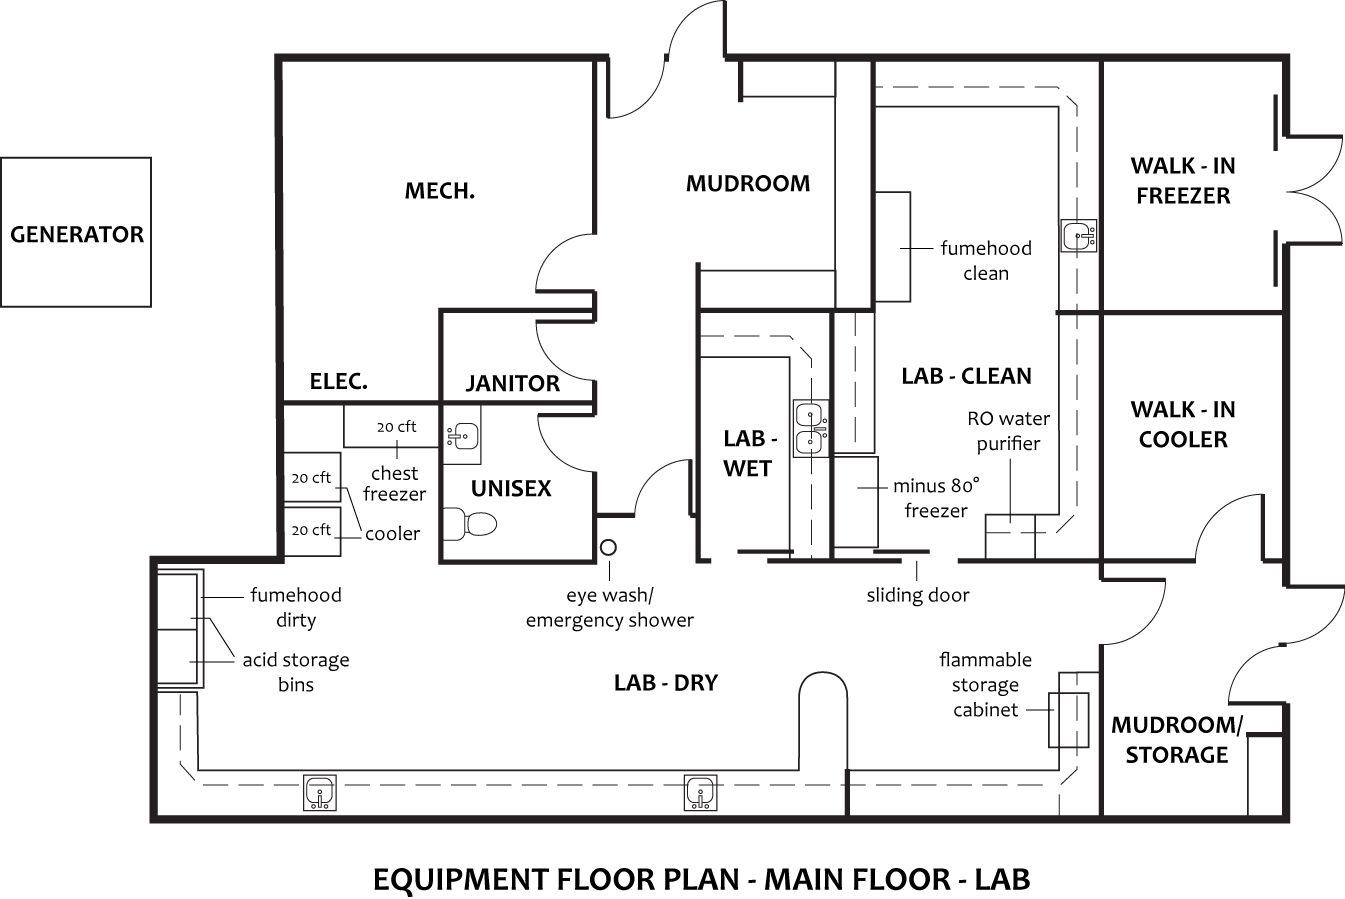 Laboratory Floor Plan